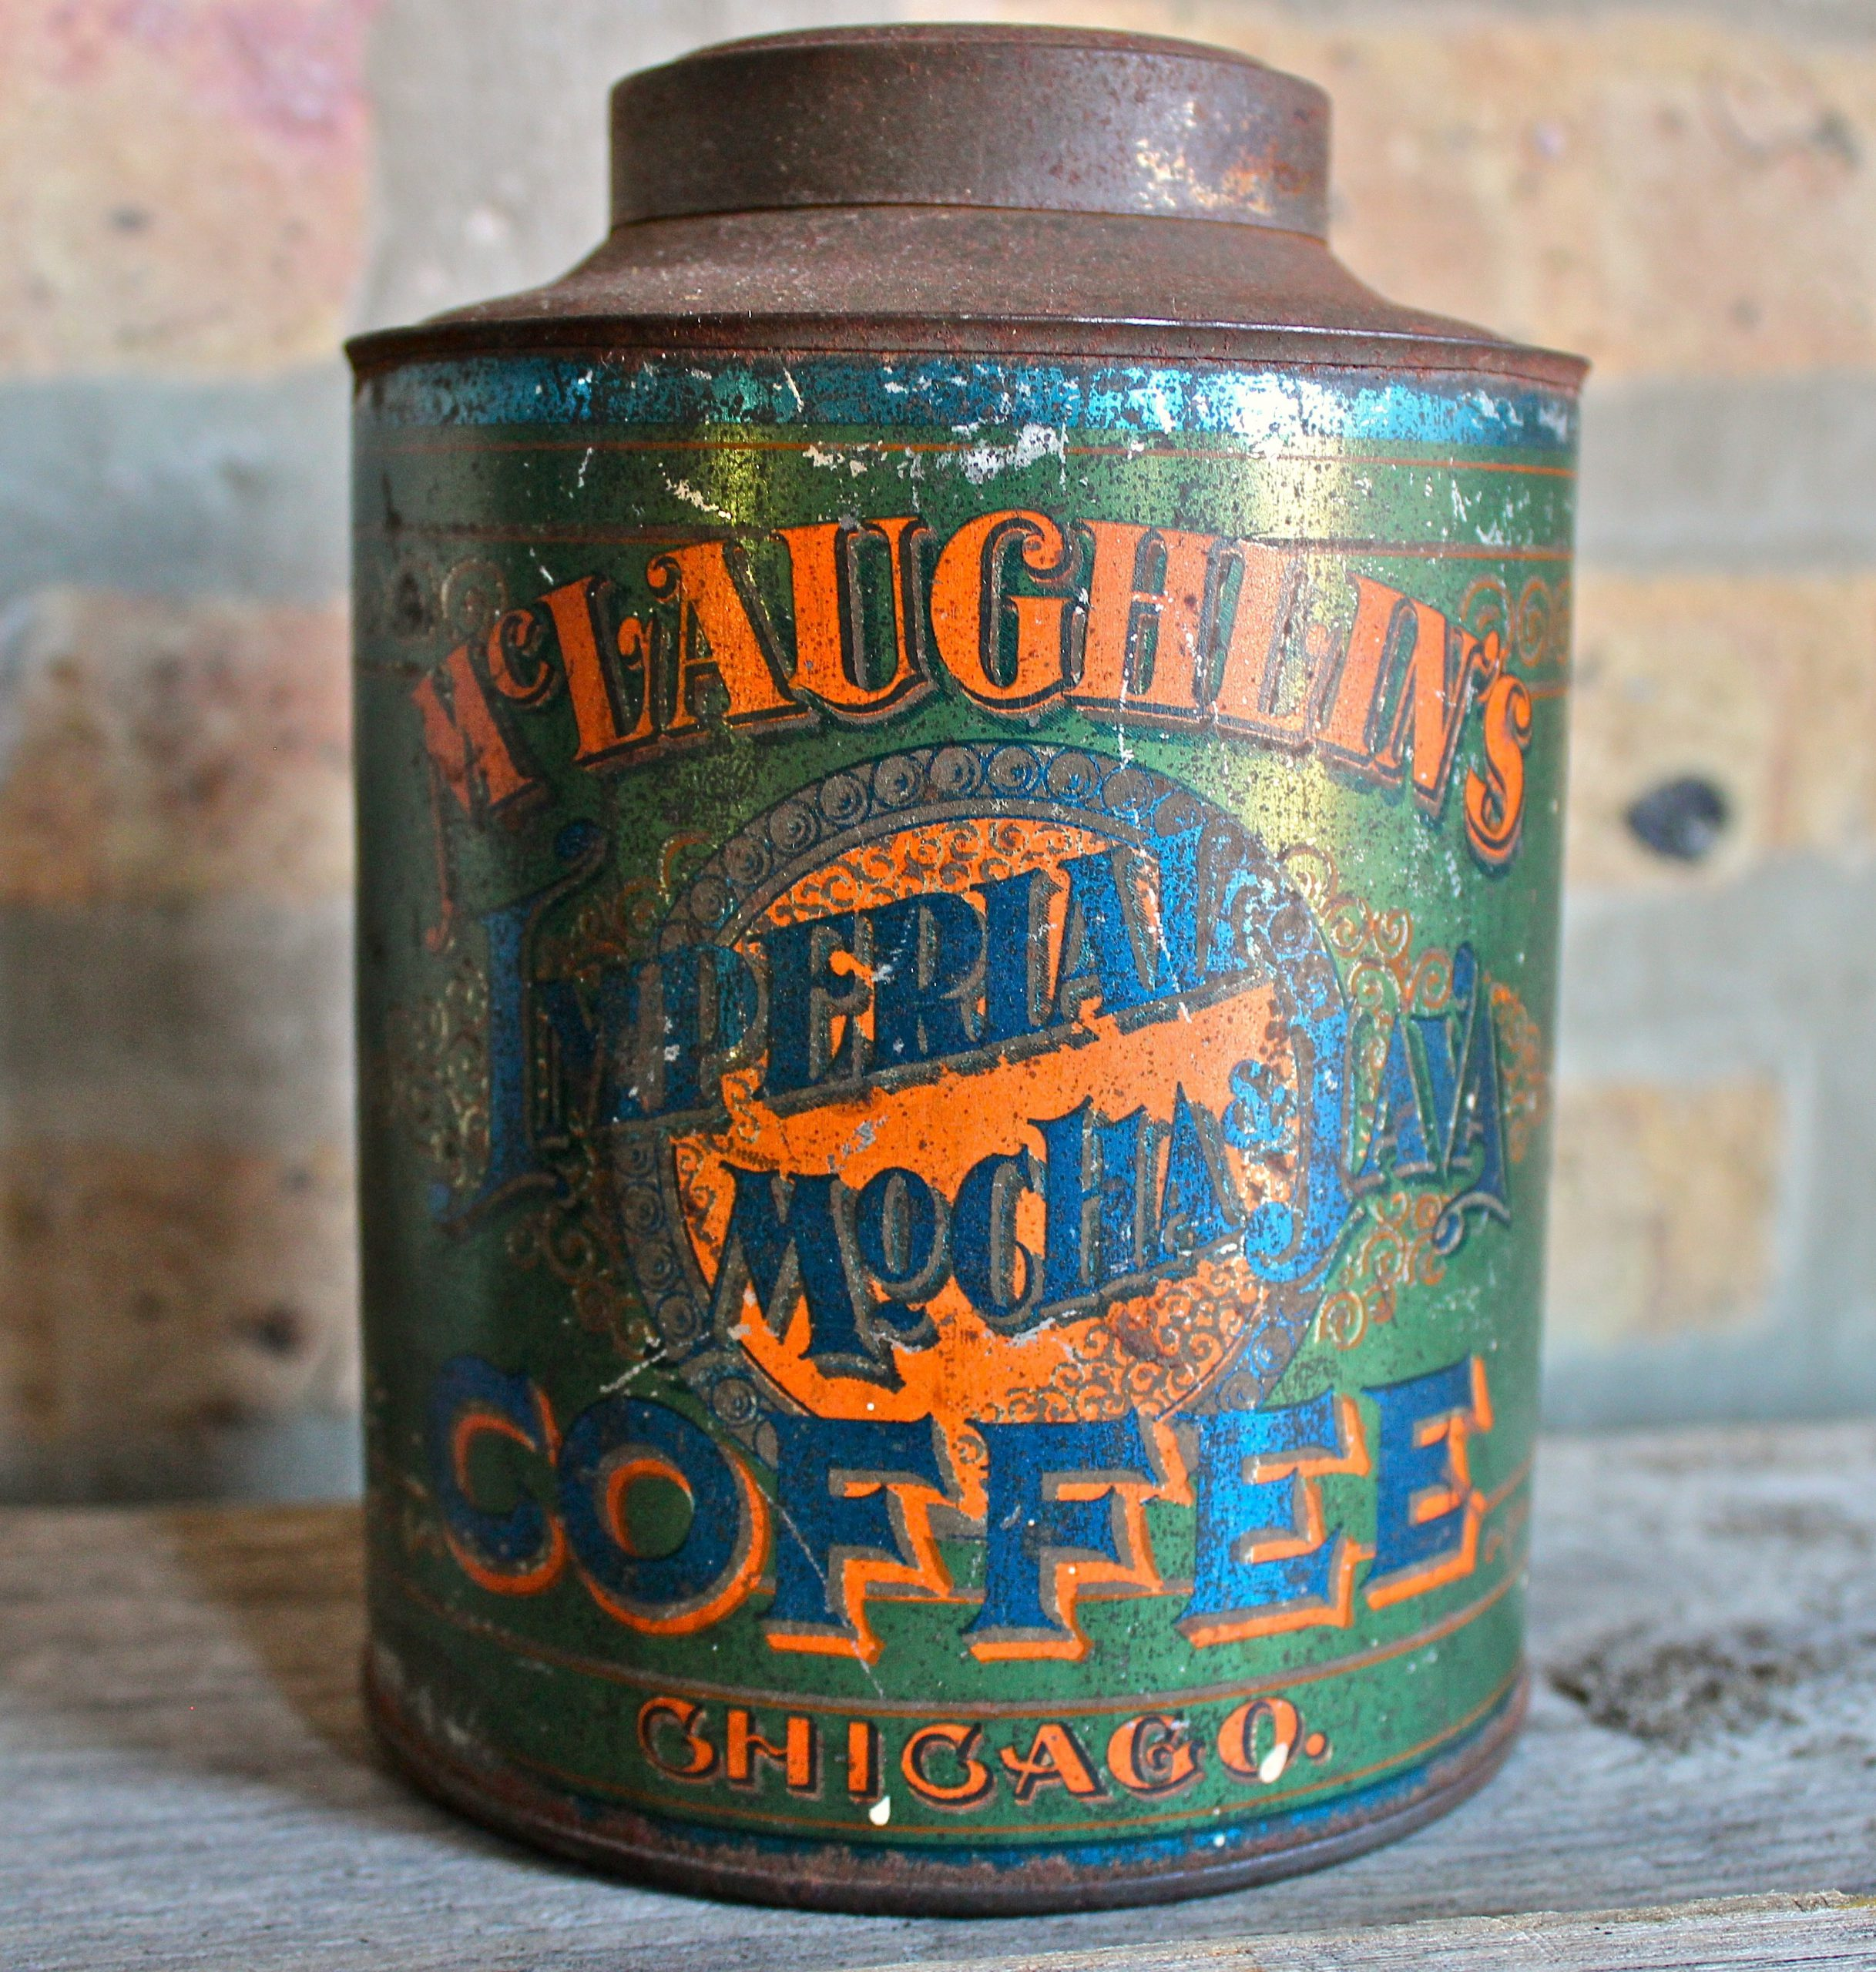 McLaughlin Coffee History